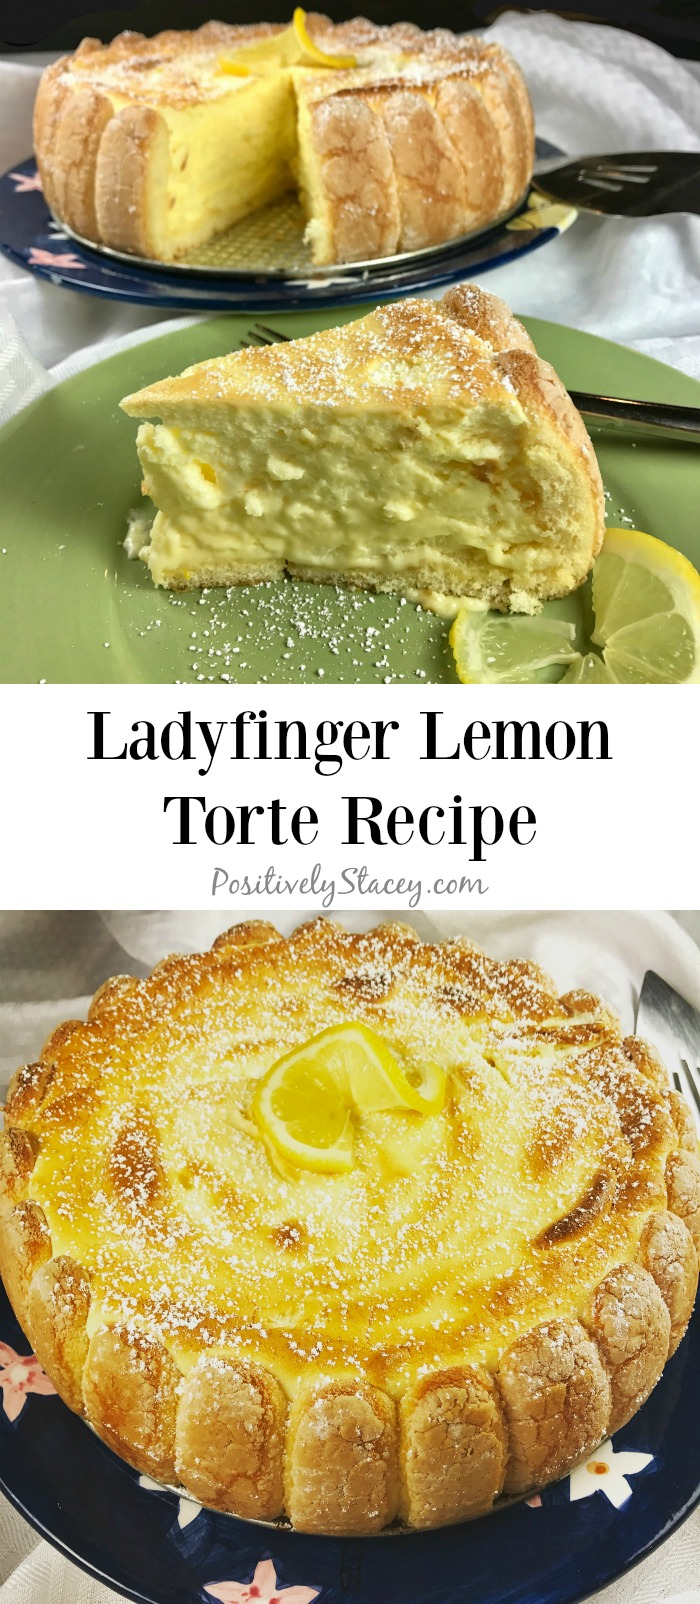 This ladyfinger lemon torte recipe makes a dessert that is melt in your mouth delicious! Light and lemony! Cool and refreshing!